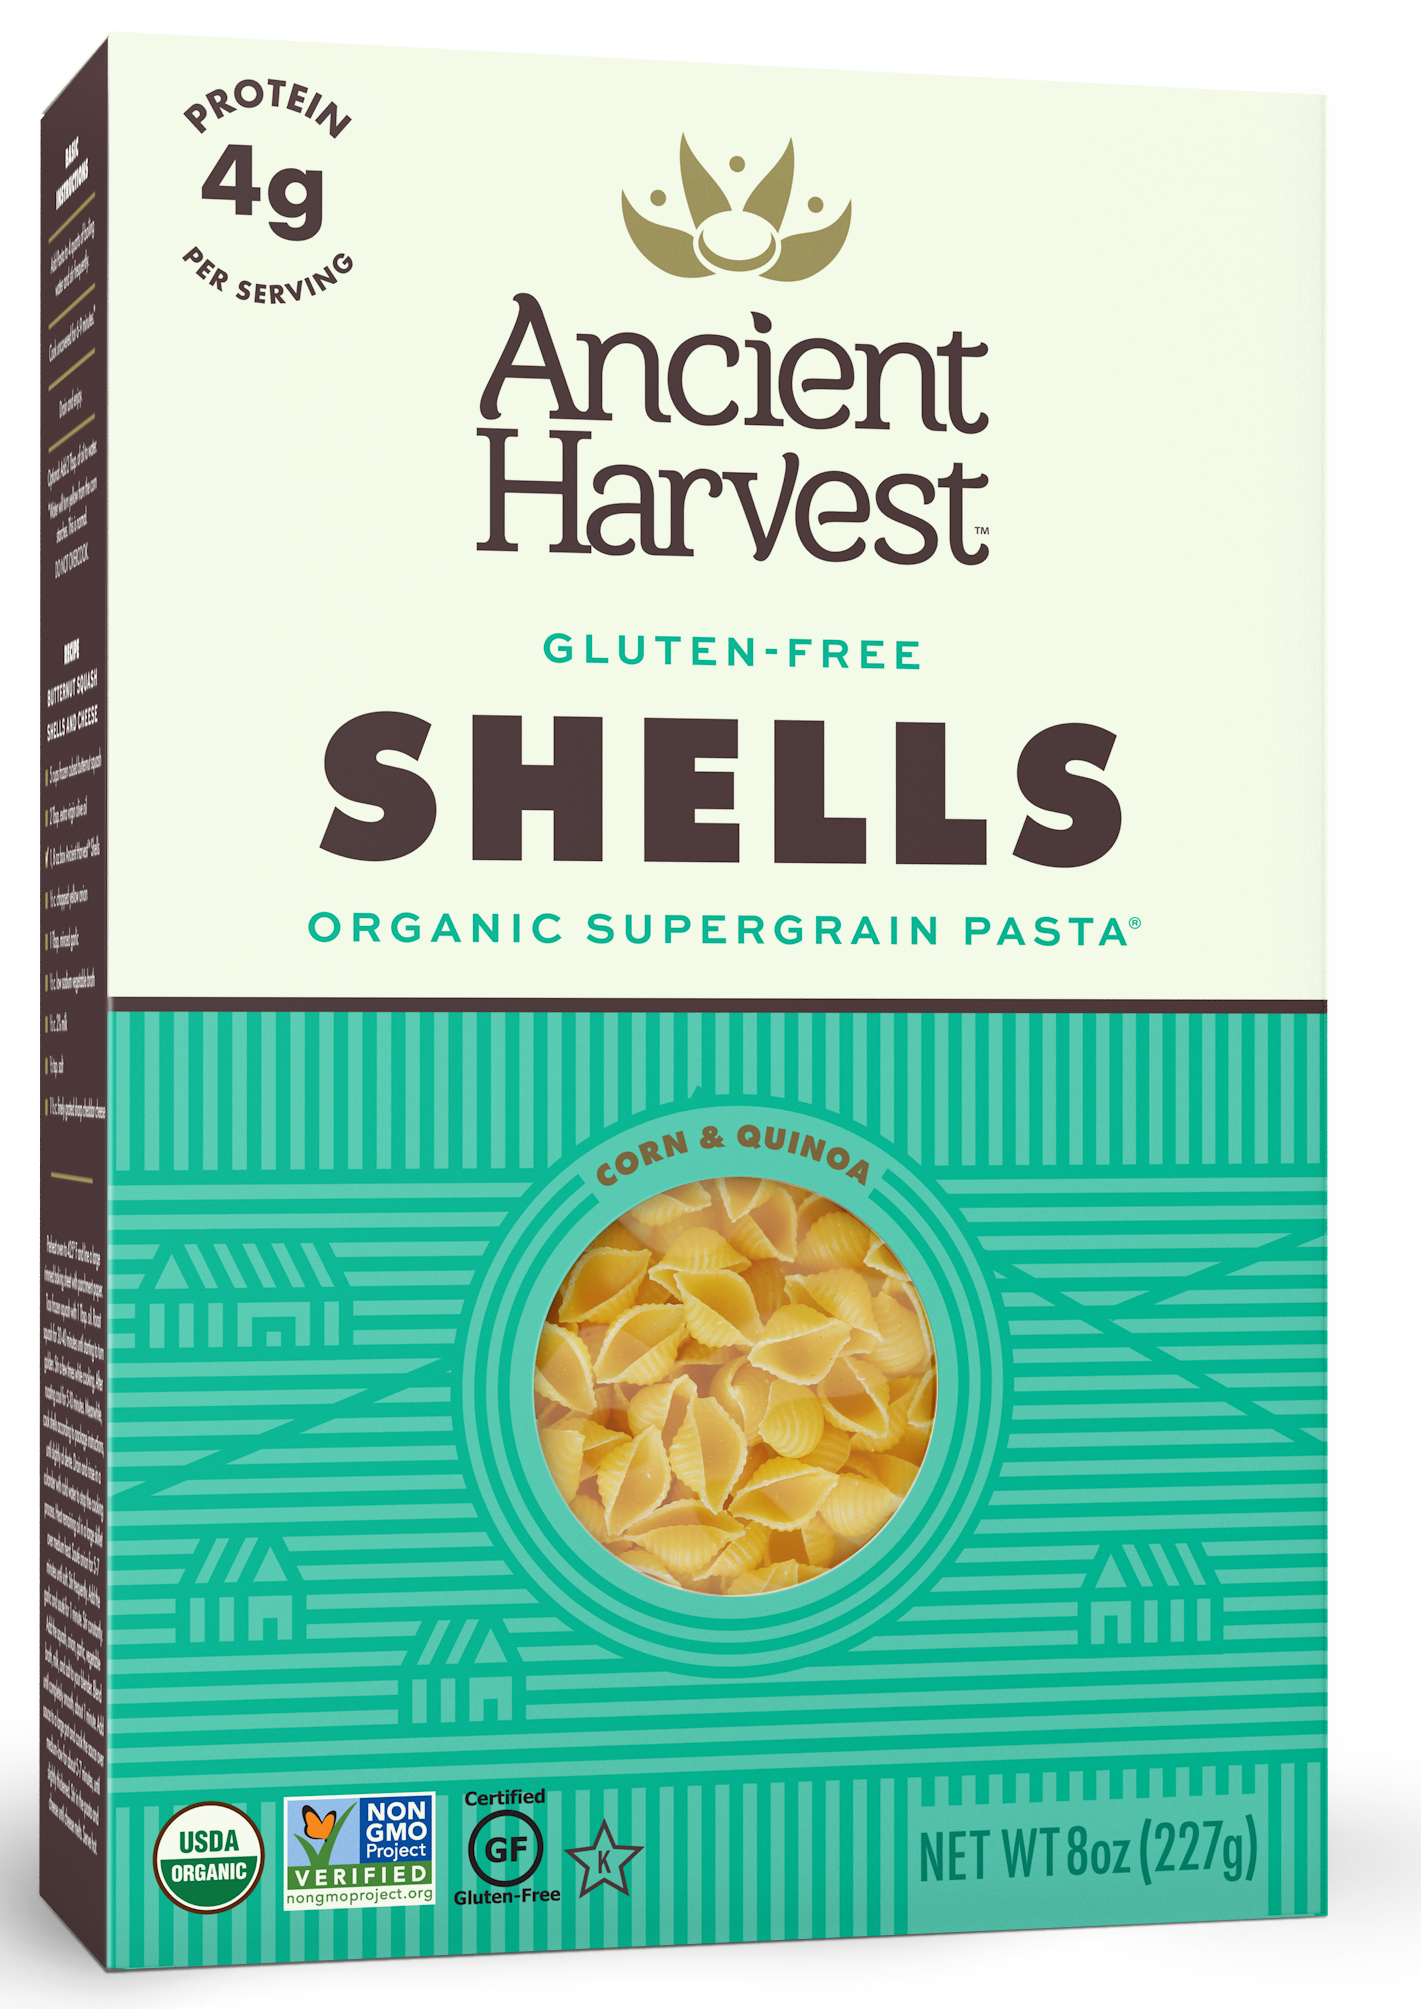 Ancient Harvest Quinoa Gluten Free Shells Pasta, 8 oz (Pack of 12) by Generic